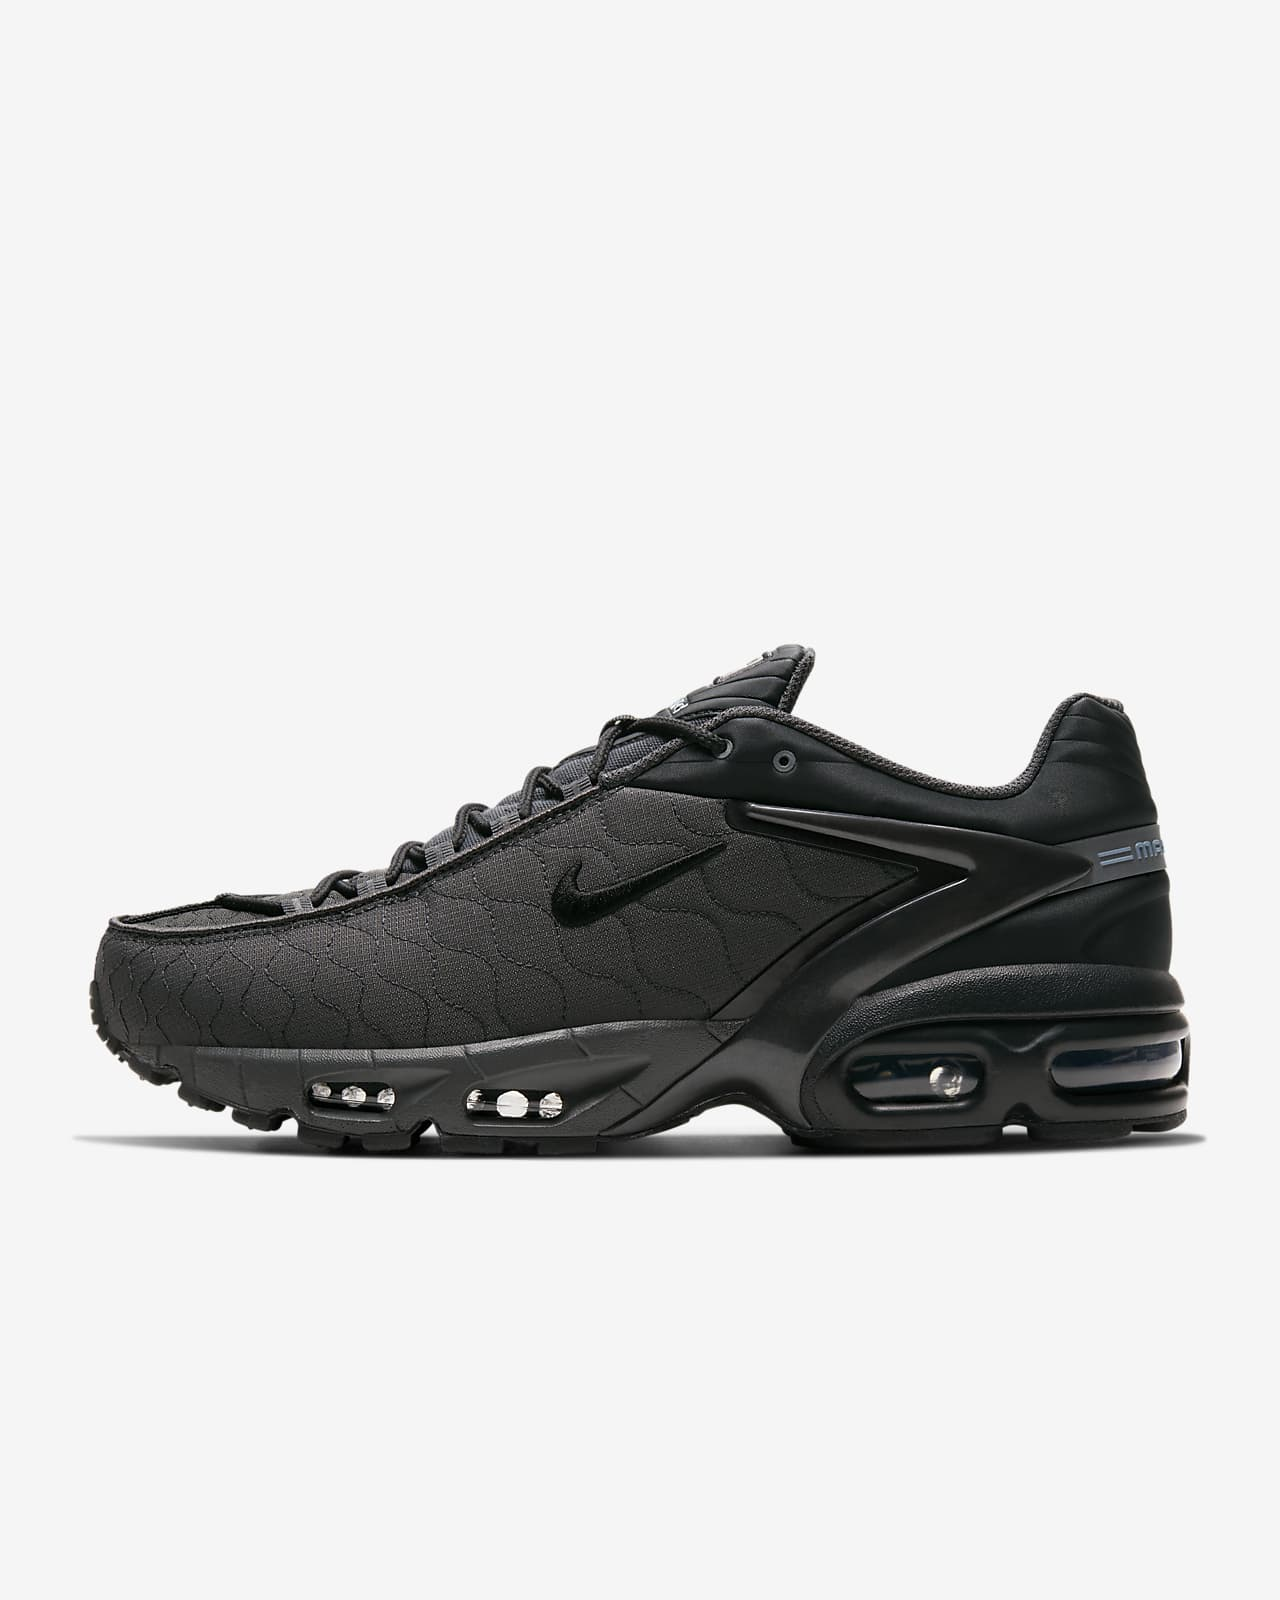 Nike Air Max Tailwind V SP Men's Shoe